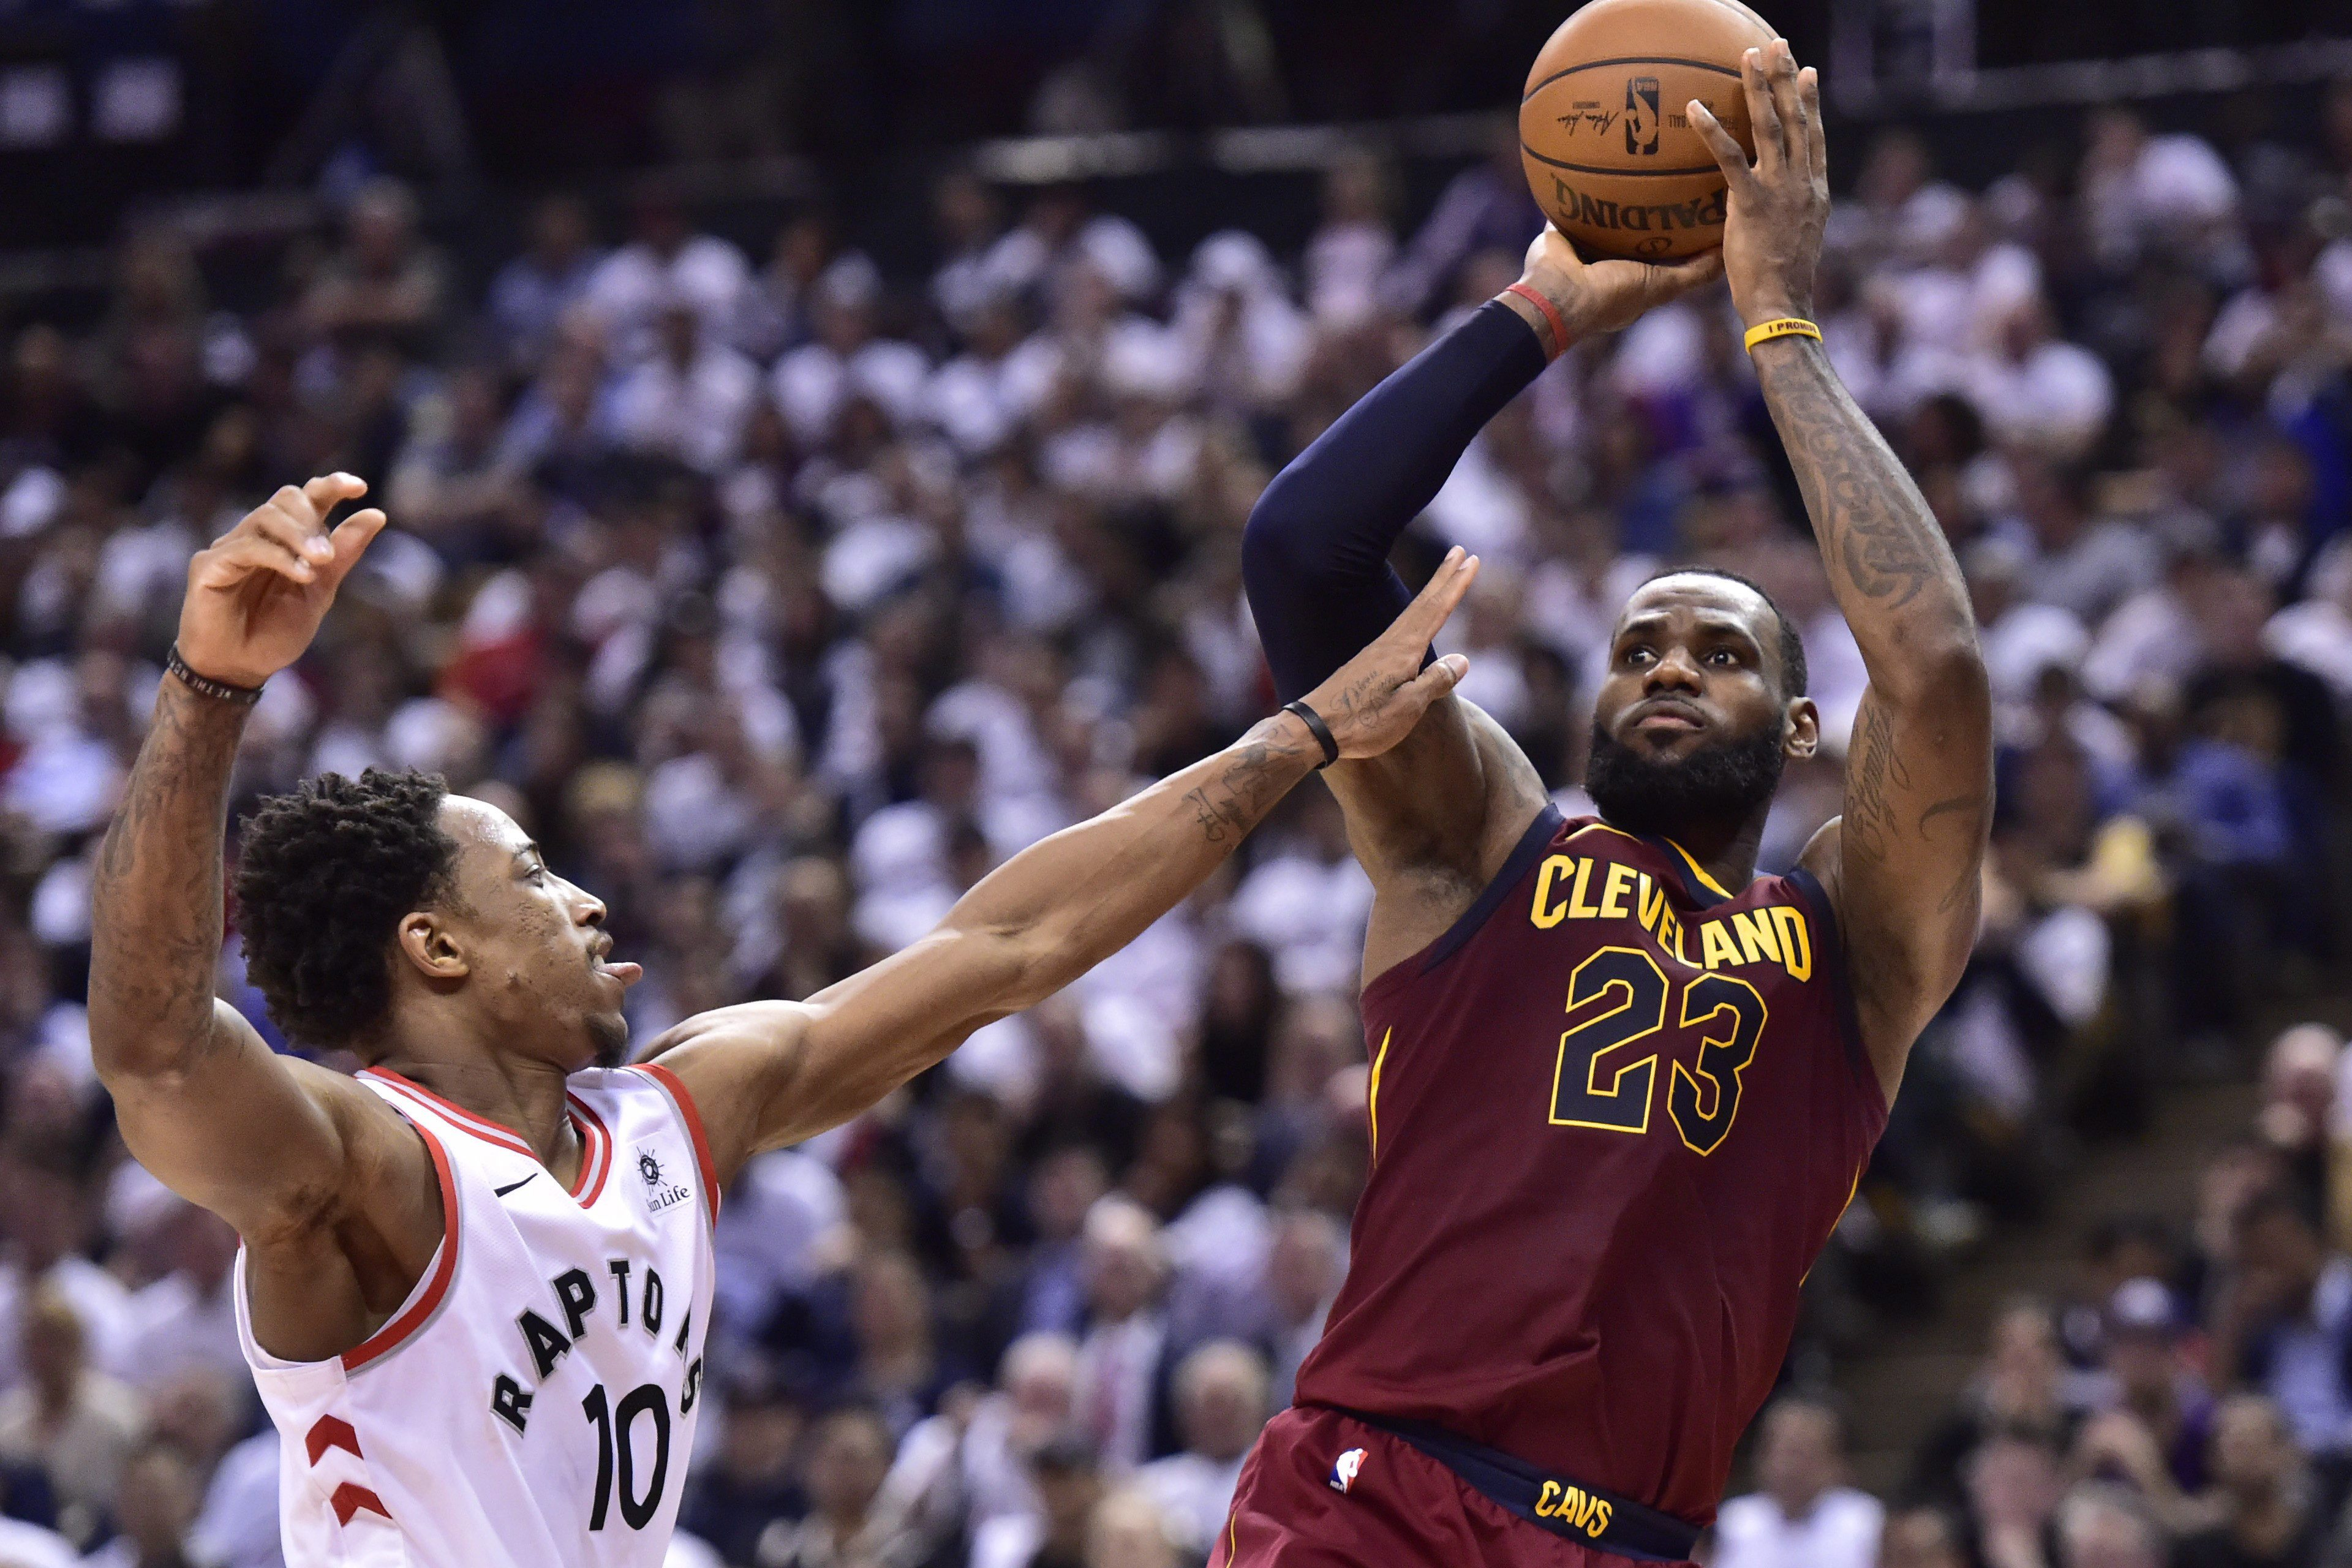 65feae01994 Cleveland Cavaliers forward LeBron James (23) scores over Toronto Raptors  guard DeMar DeRozan (10) during second half NBA playoff basketball action  in ...